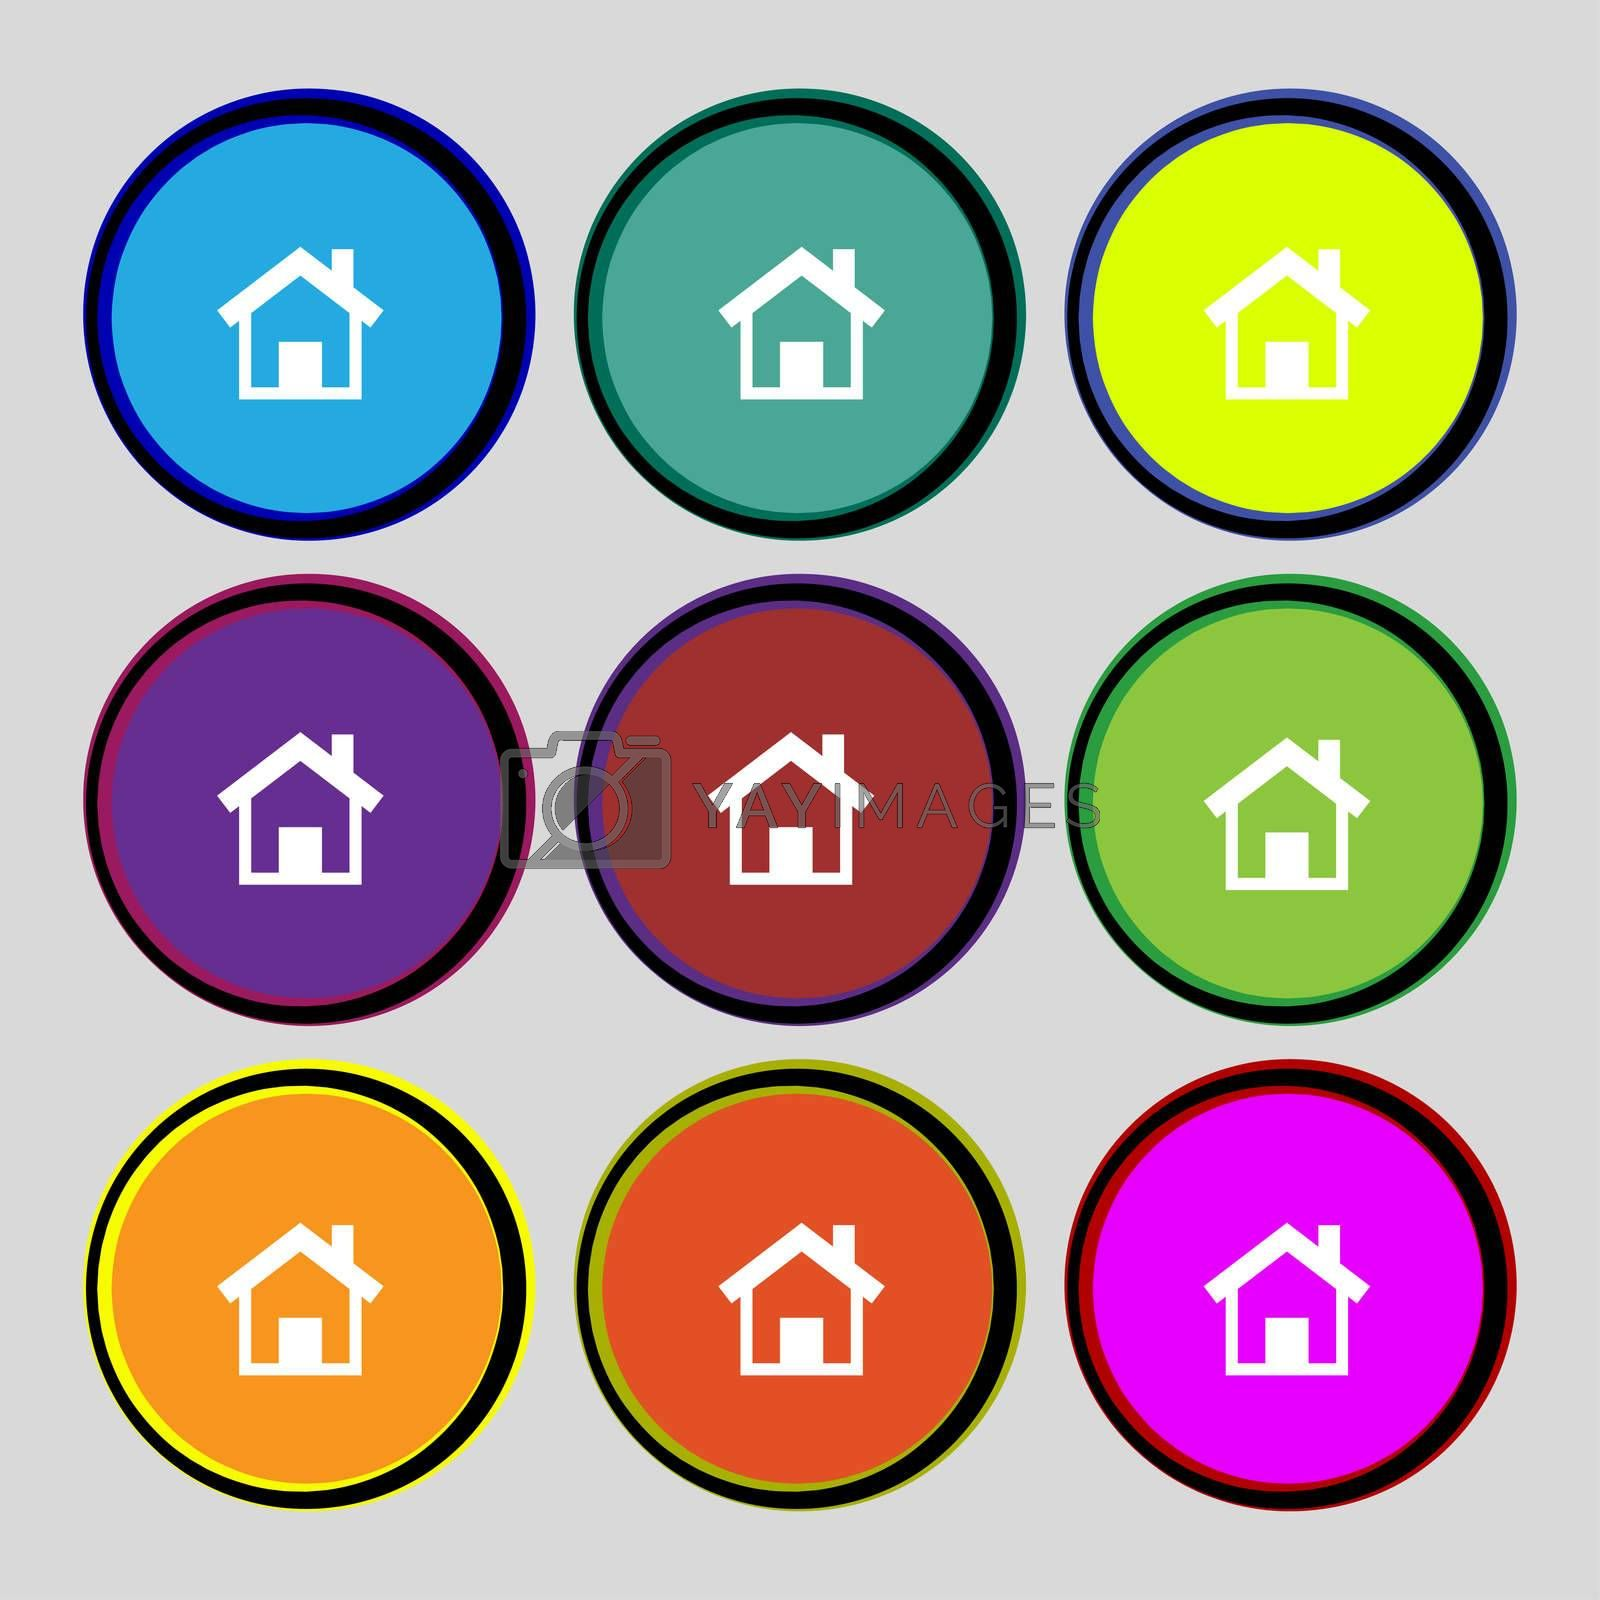 Home sign icon. Main page button. Navigation symbol.Set colourful buttons  by Serhii Lohvyniuk